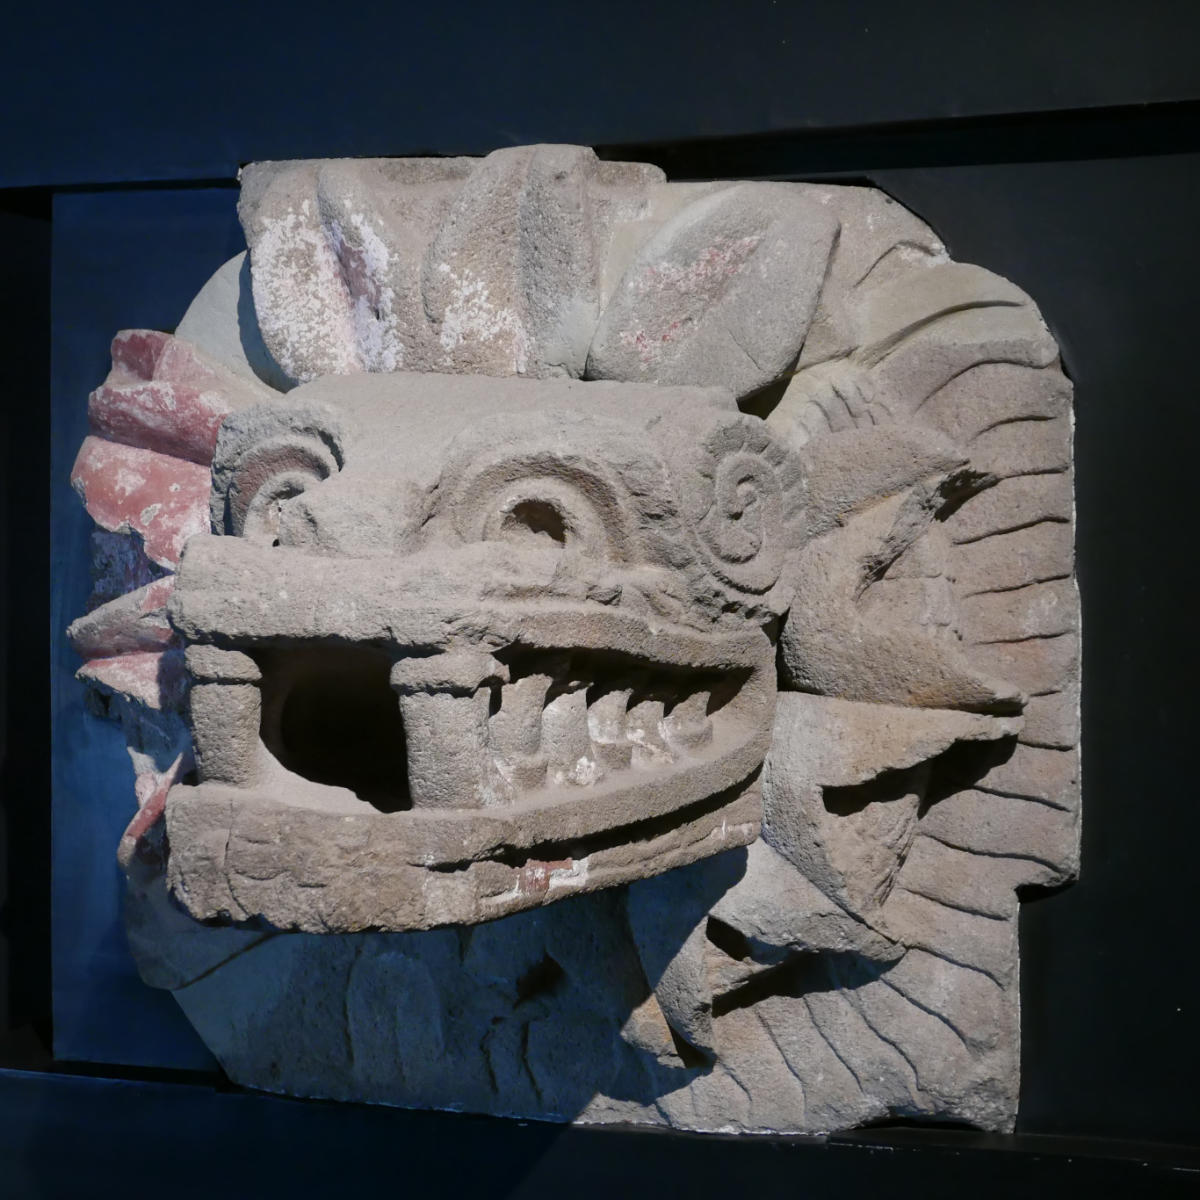 Piece of art in Teotihuacan museum